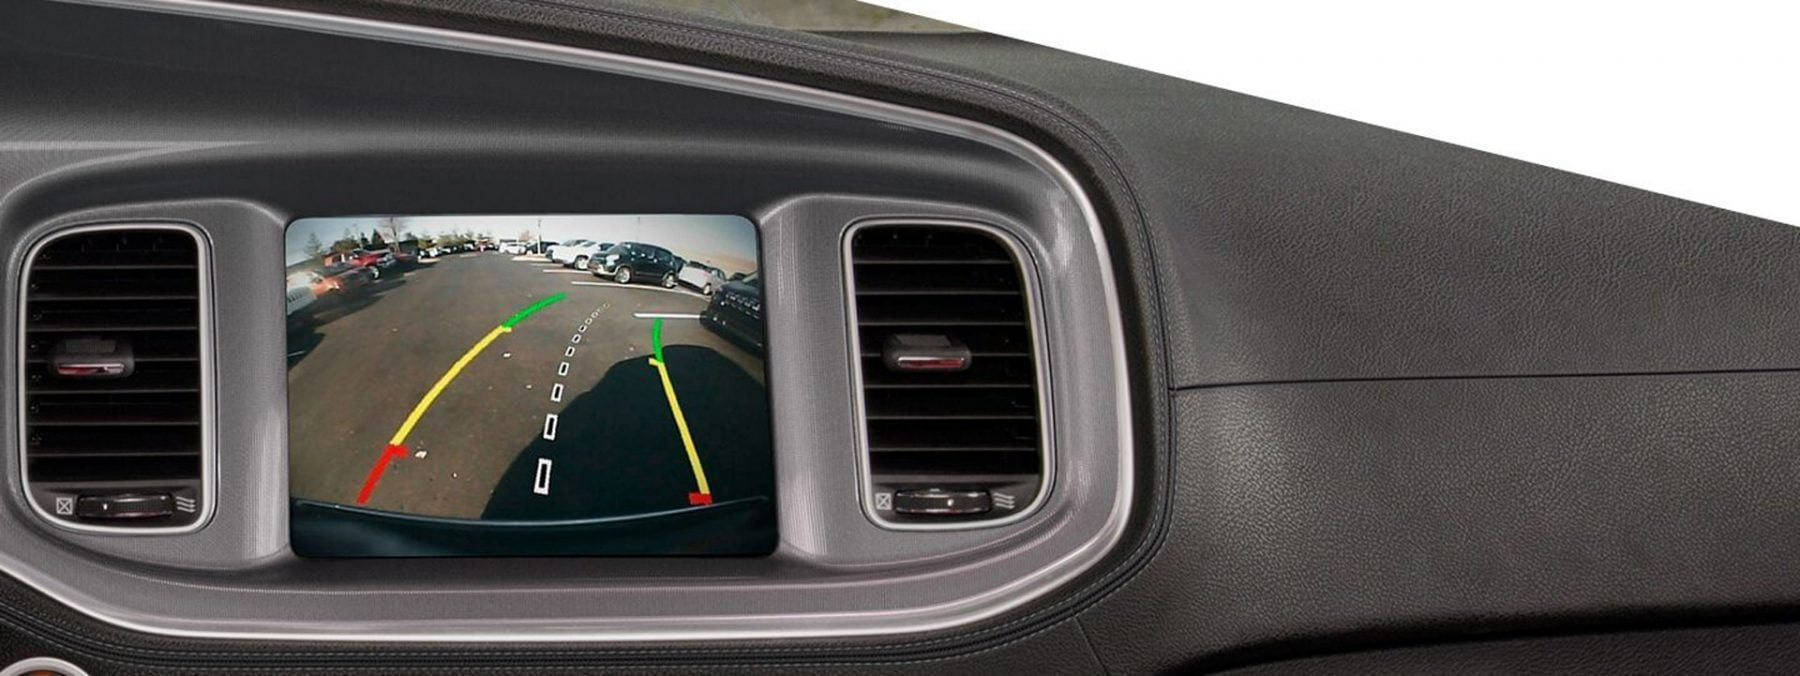 2019 Dodge Charger safety